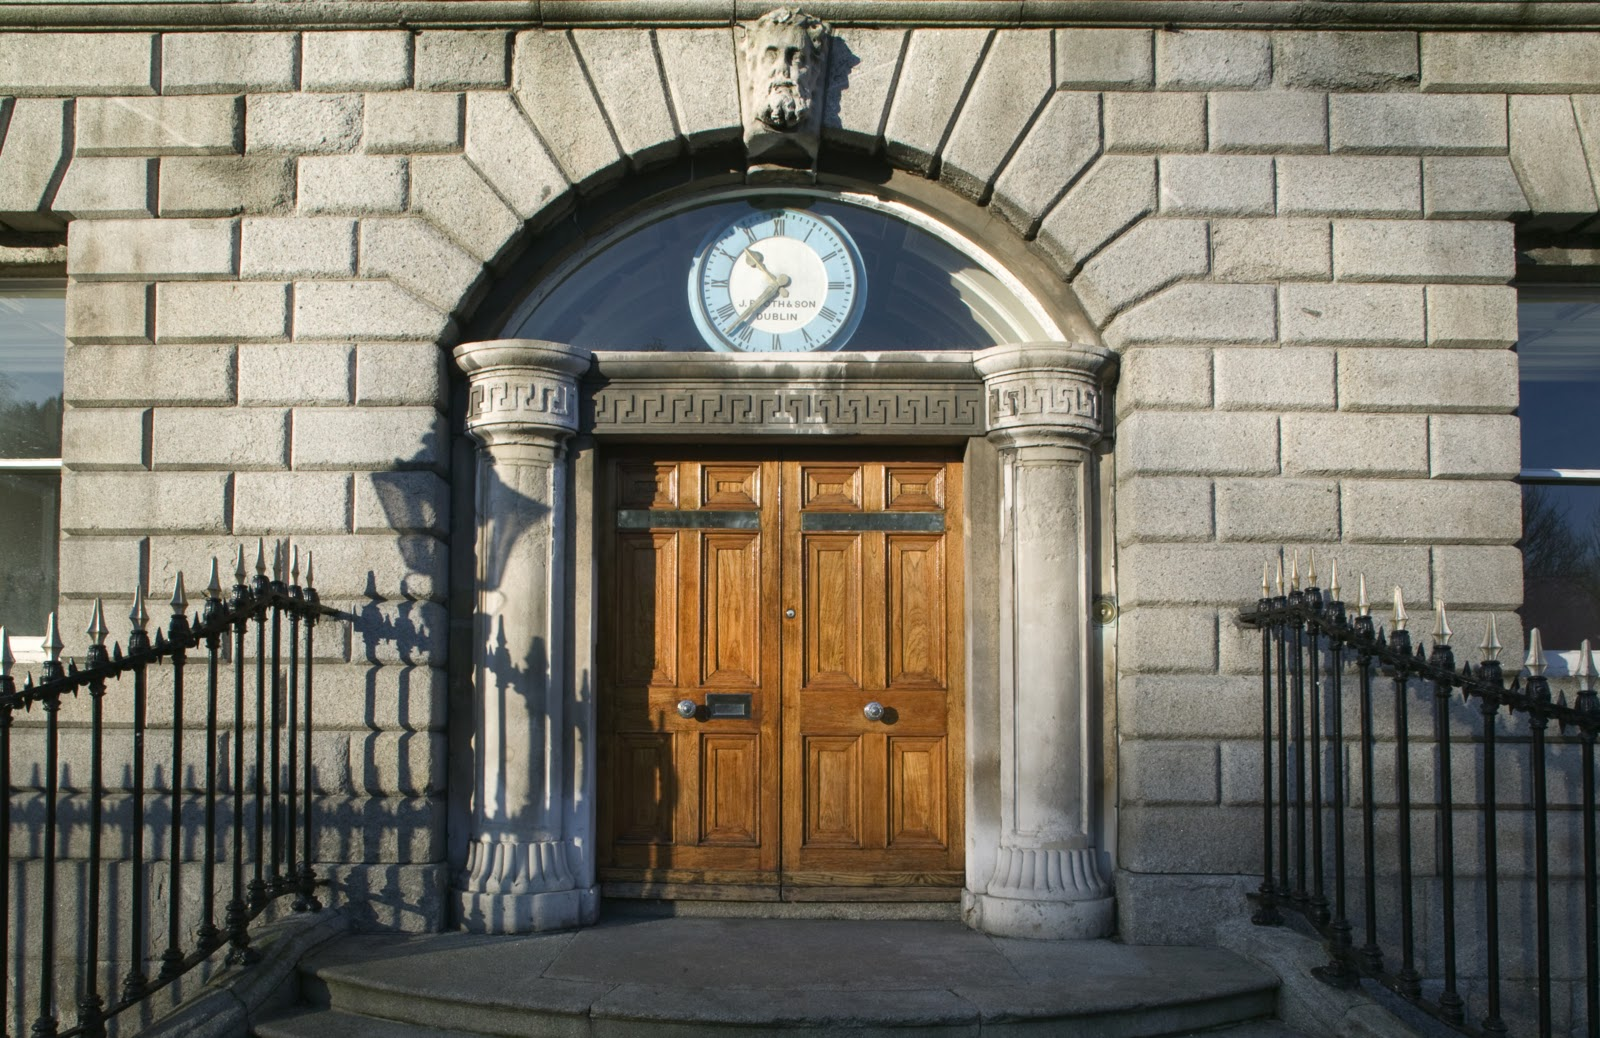 The clock above the front entrance to the College is a beautiful eye-catching sky blue colour much like Dublin\u0027s sky these last few sunny days. & Above the College Door   Heritage Collections of the Royal College ...